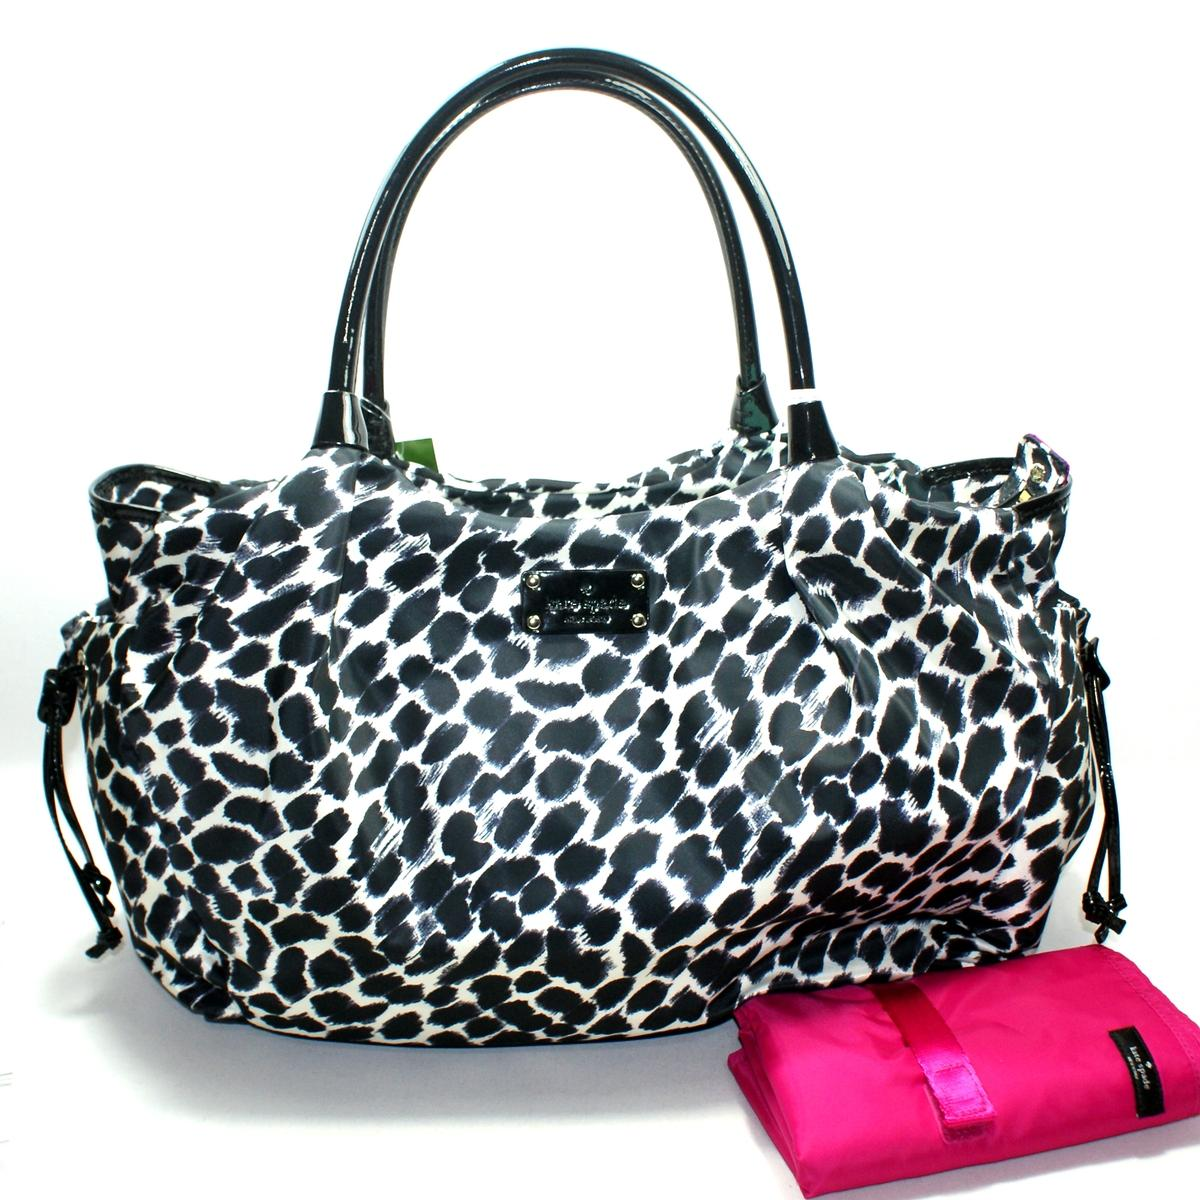 small handbags kate spade diaper bag. Black Bedroom Furniture Sets. Home Design Ideas